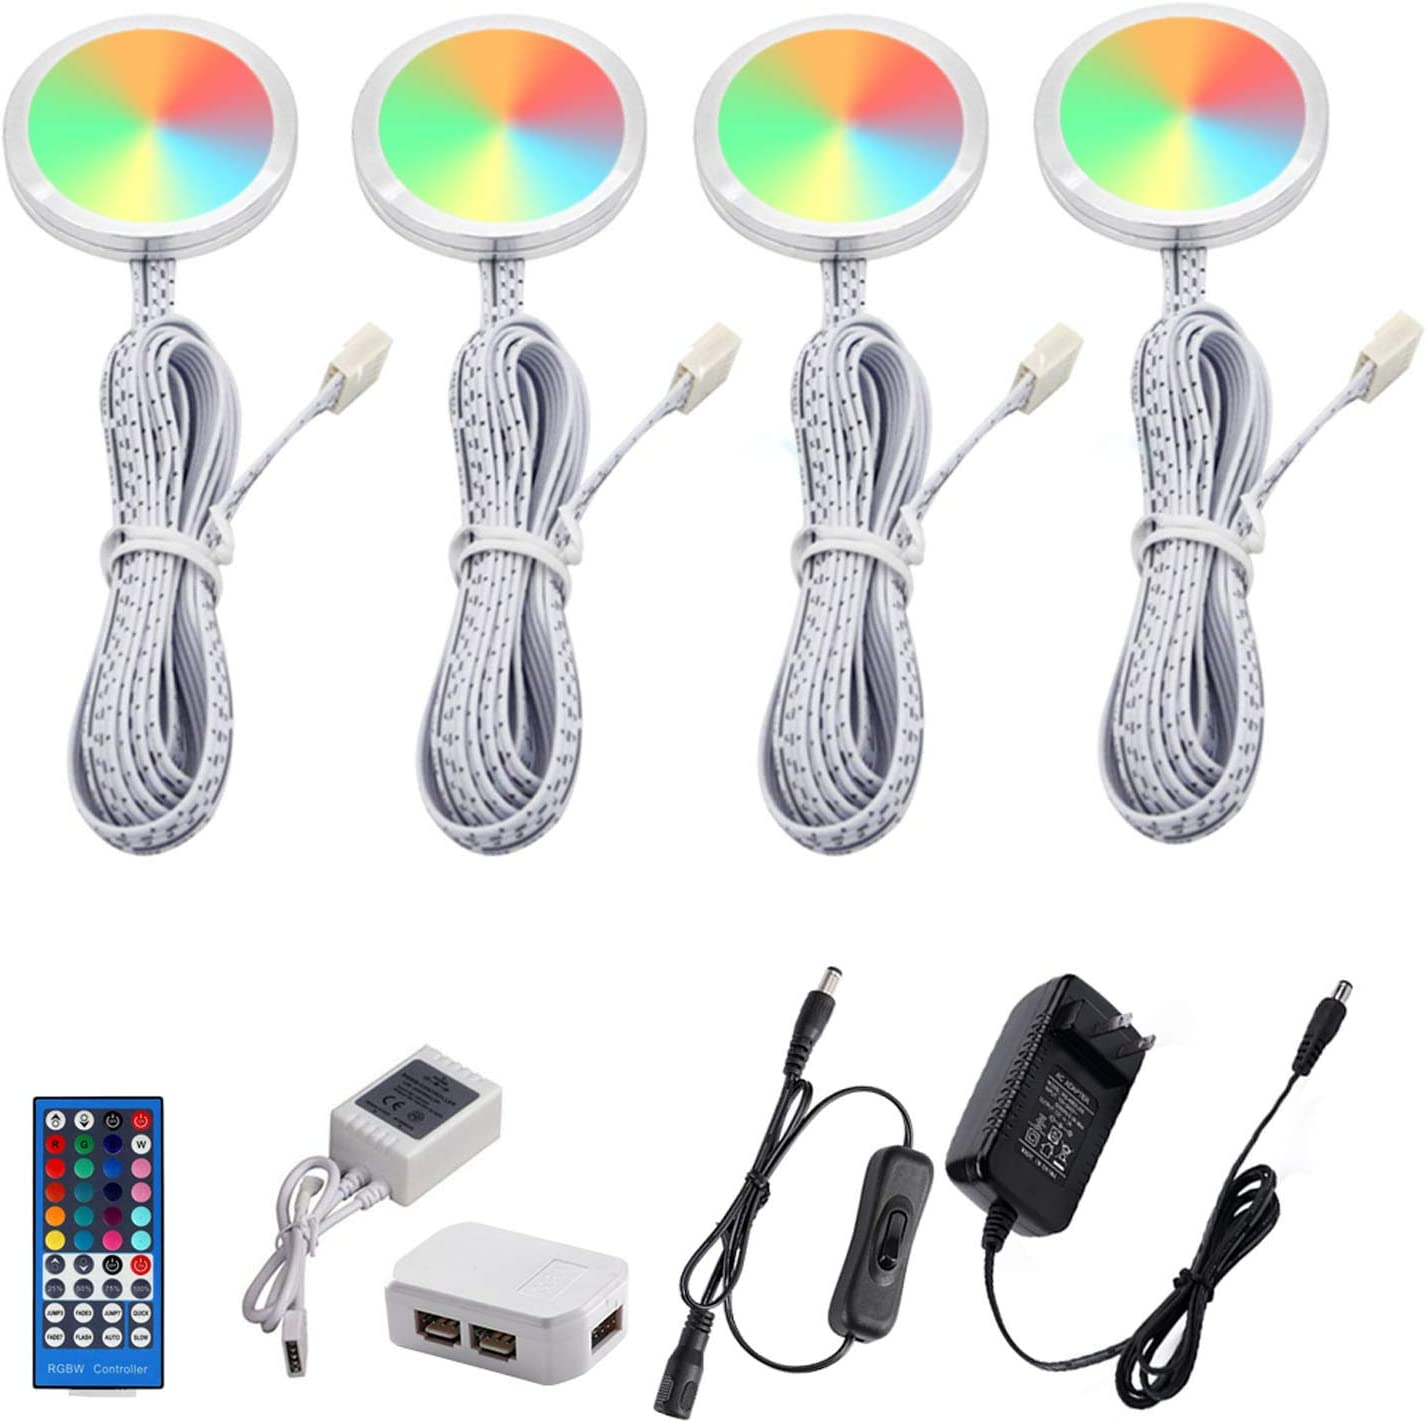 Buy Aiboo Rgbww Rgb Warm White Color Changing Christmas Xmas Under Cabinet Led Lights Kit Rf Remote Puck Lights For Kitchen Counter Shelf Furniture Ambiance Lighting Rgbww 4 Lights 12w Online